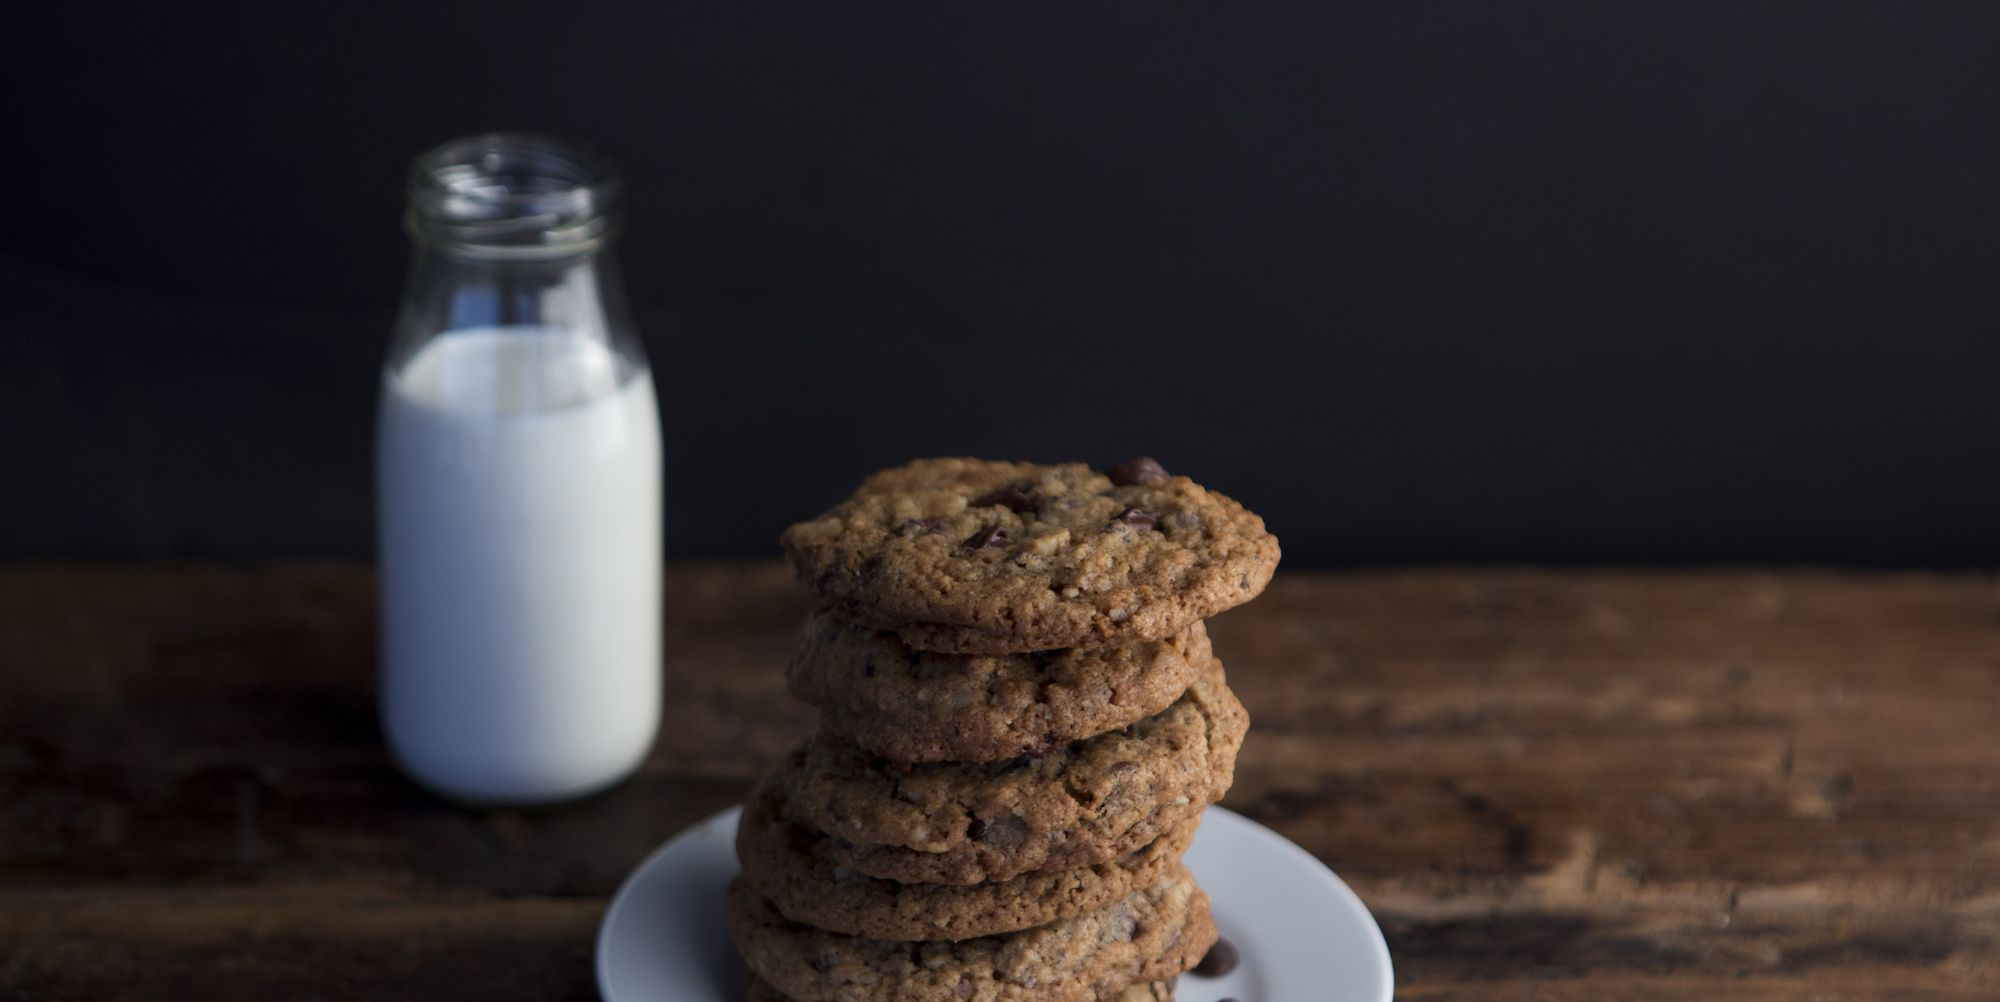 DoubleTree Hotels Shared Its Secret Chocolate Chip Cookie Recipe